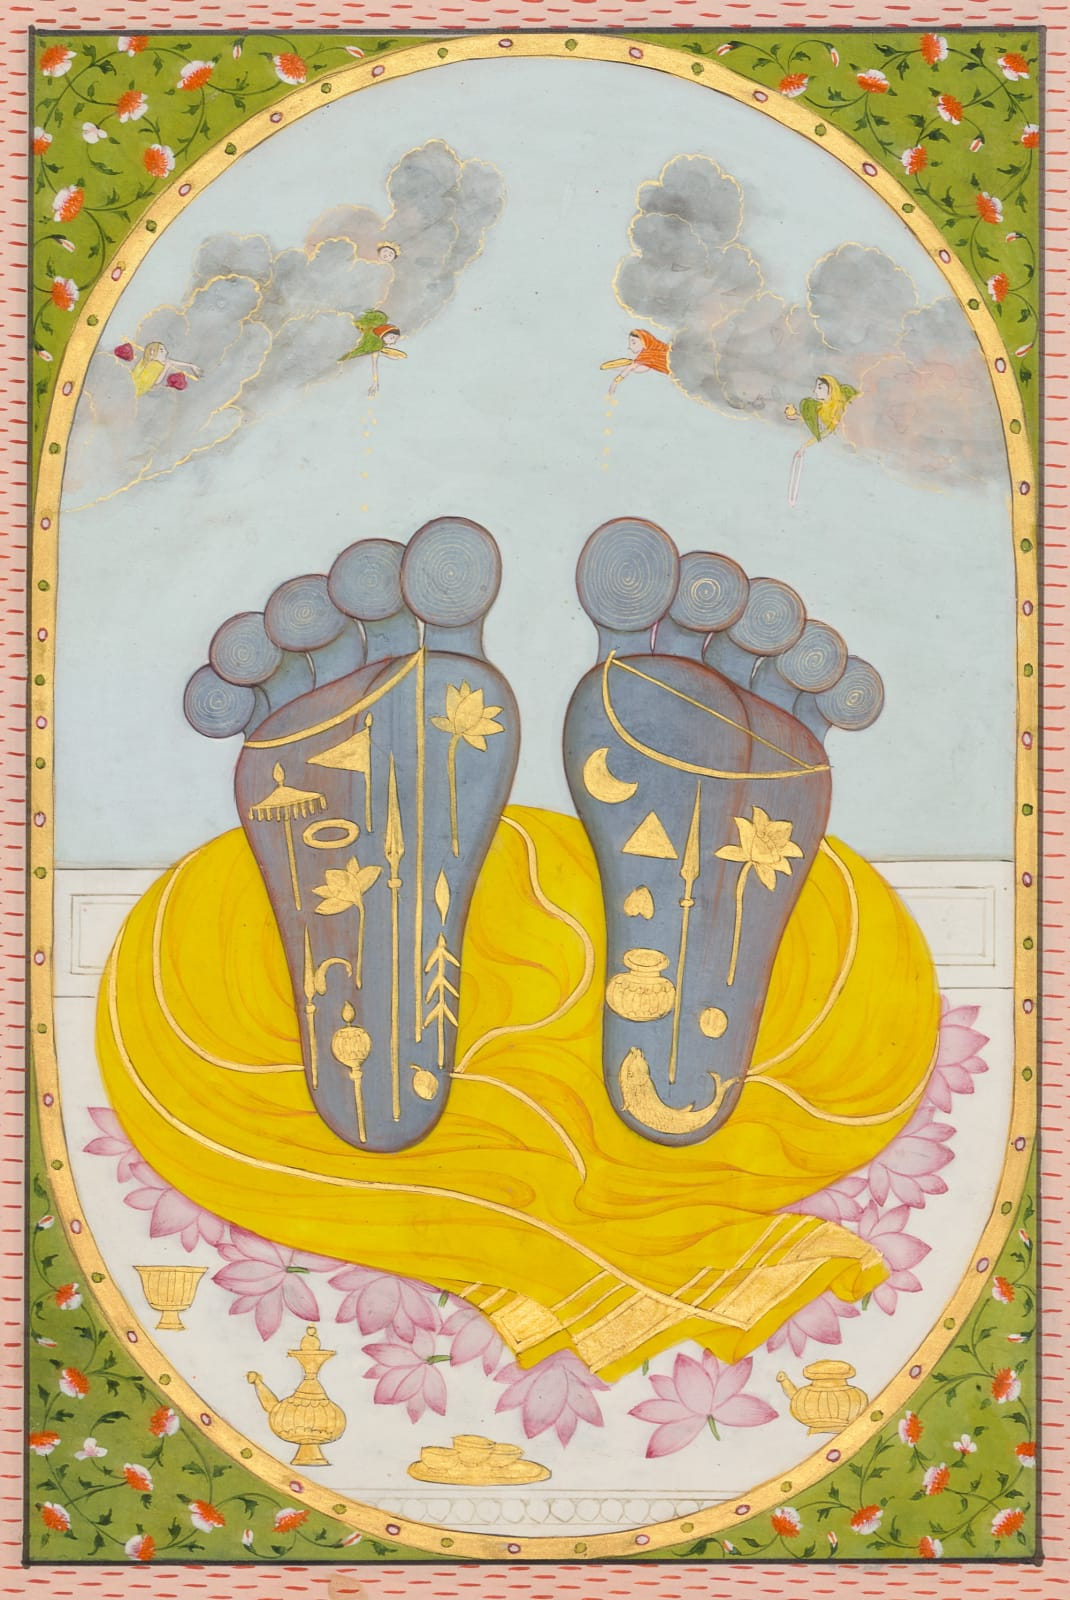 Vishnu's feet as objects of worship, Kangra, c. 1810–20